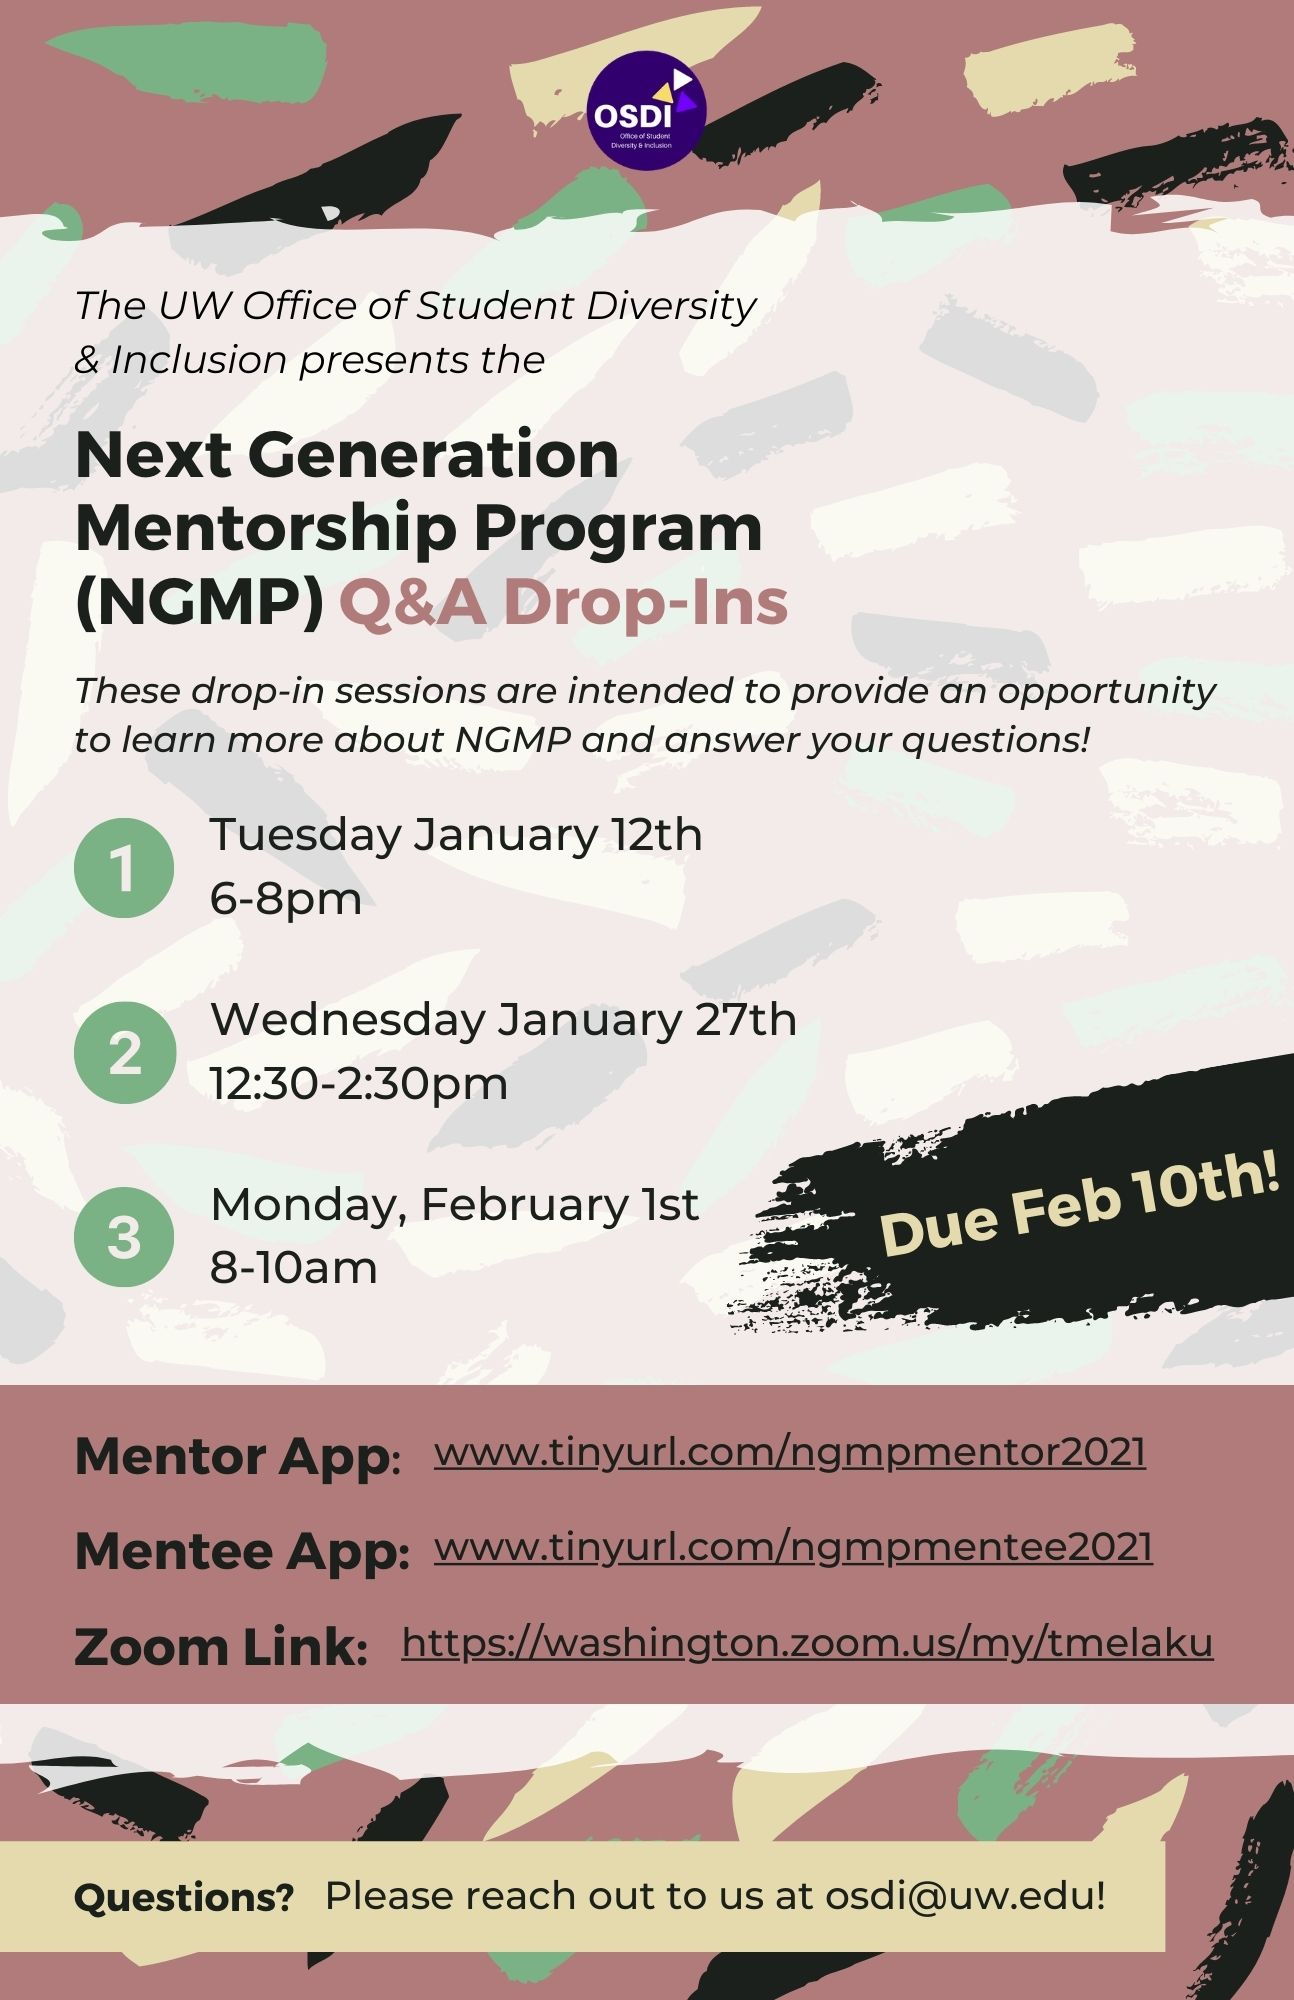 Next Generation Mentorship Program Q&A Drop-in hours. If you have questions stop by on January 27th from 12:30pm to 2:30pm or on February 1st from 8am to 10am. The zoom link to join the session is https://washington.zoom.us/my/tmelaku    If you are interested in applying already the links are as follows. For mentors www.tinyurl.com/ngmpmentor2021 and for mentees www.tinyurl.com/ngmpmentee2021